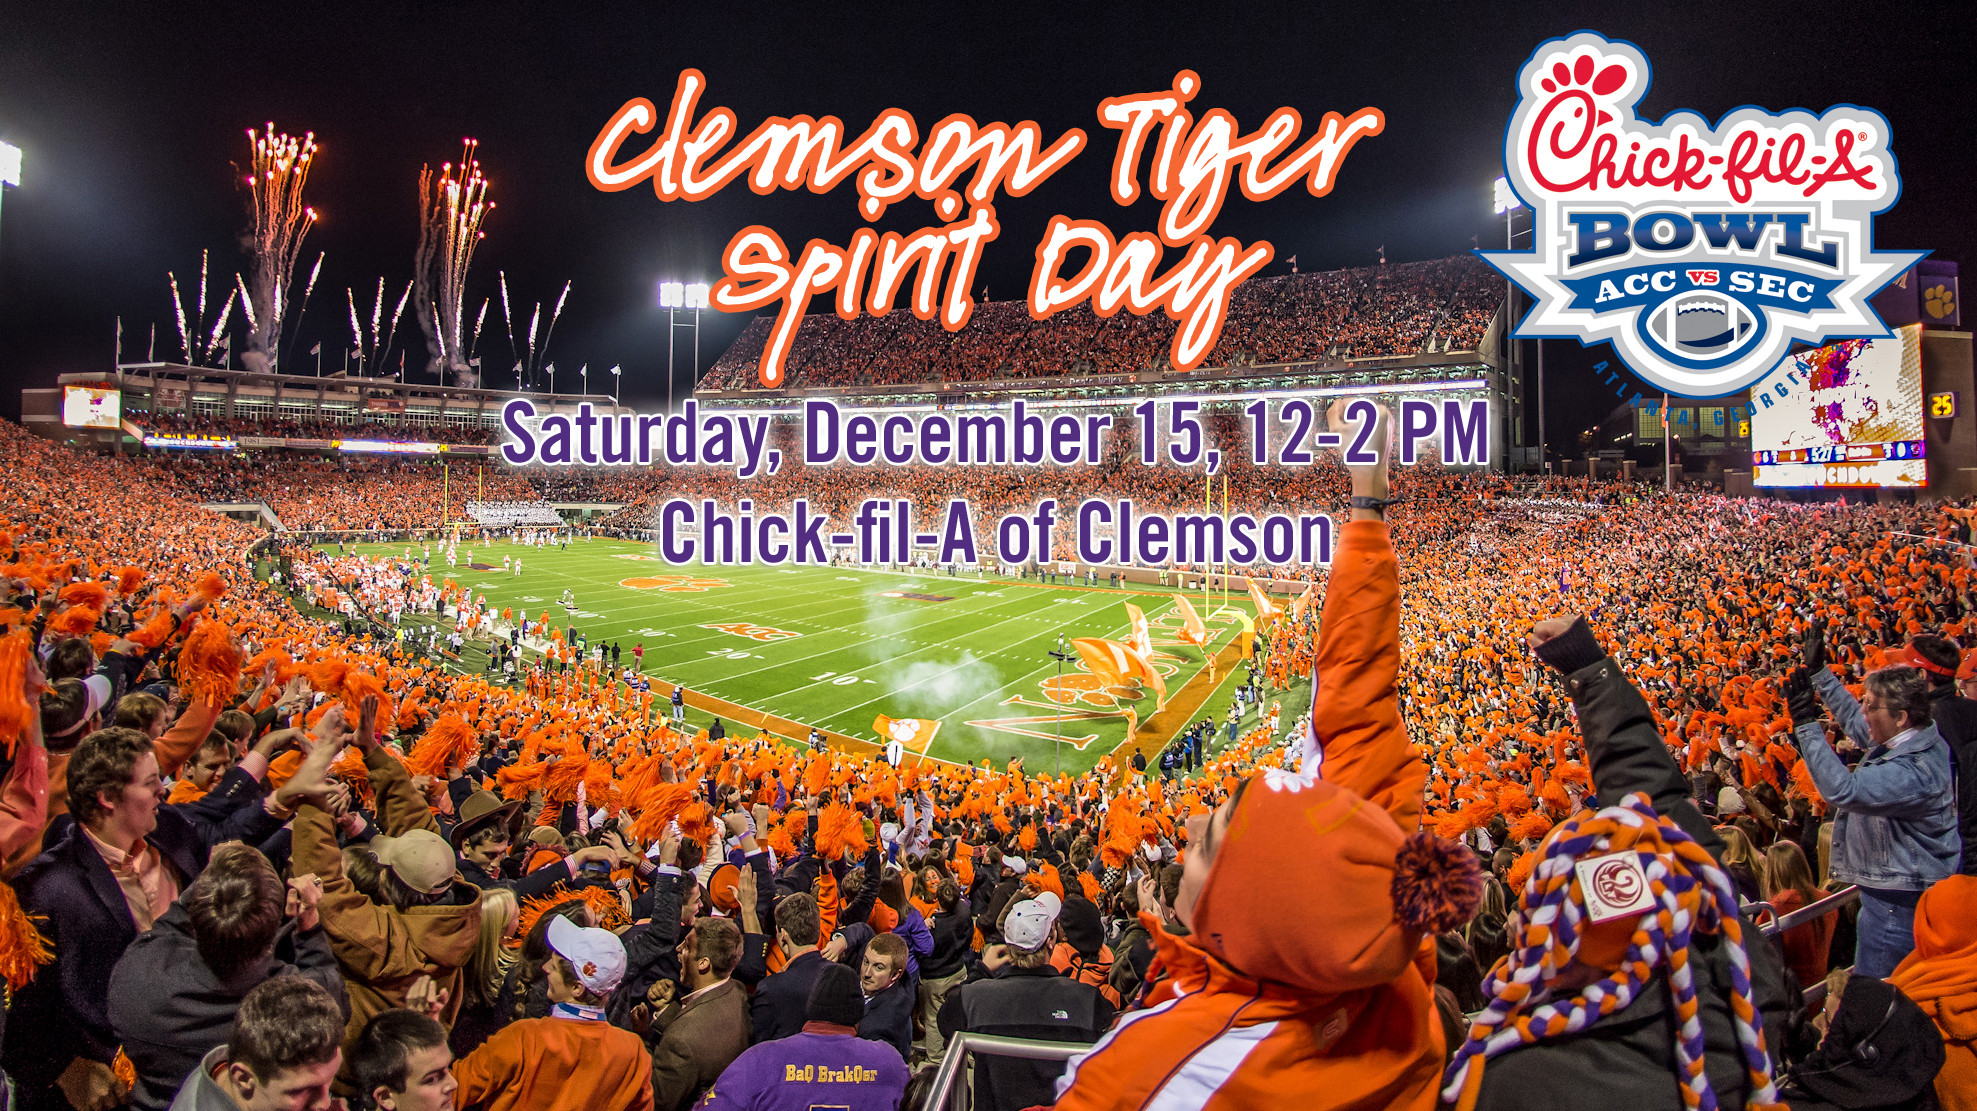 Clemson Tiger Spirit Day to be Held Sat., Dec. 15 at Chick-fil-A in Clemson